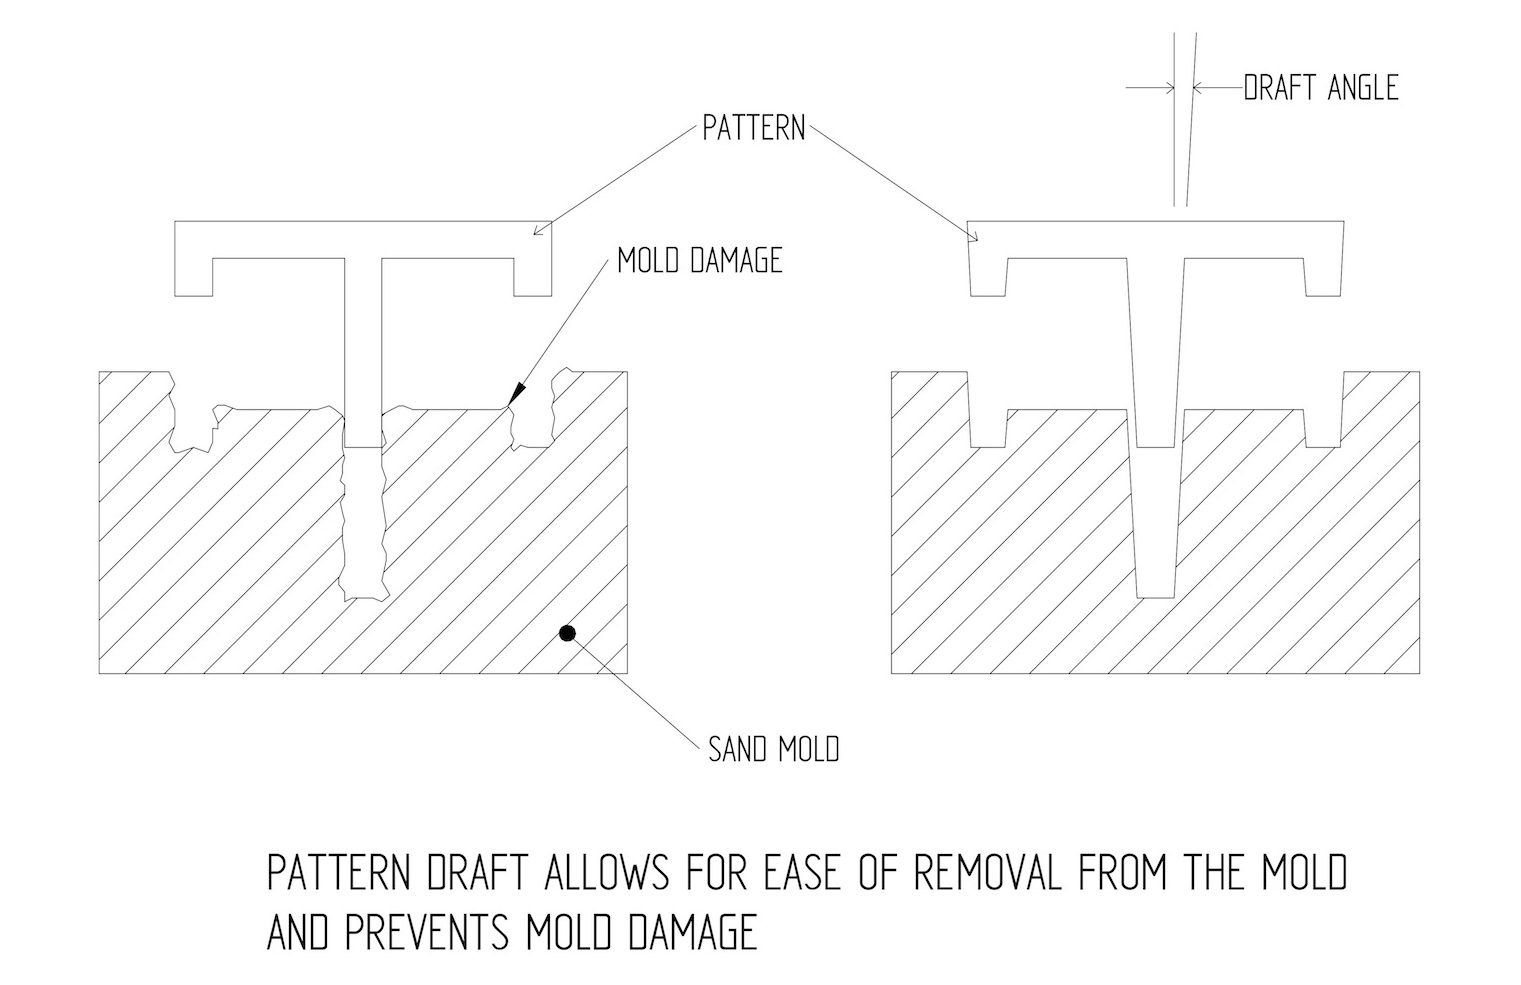 Differences between Sand Molds, Mold Damage, and Patterns with regard to Iron Casting